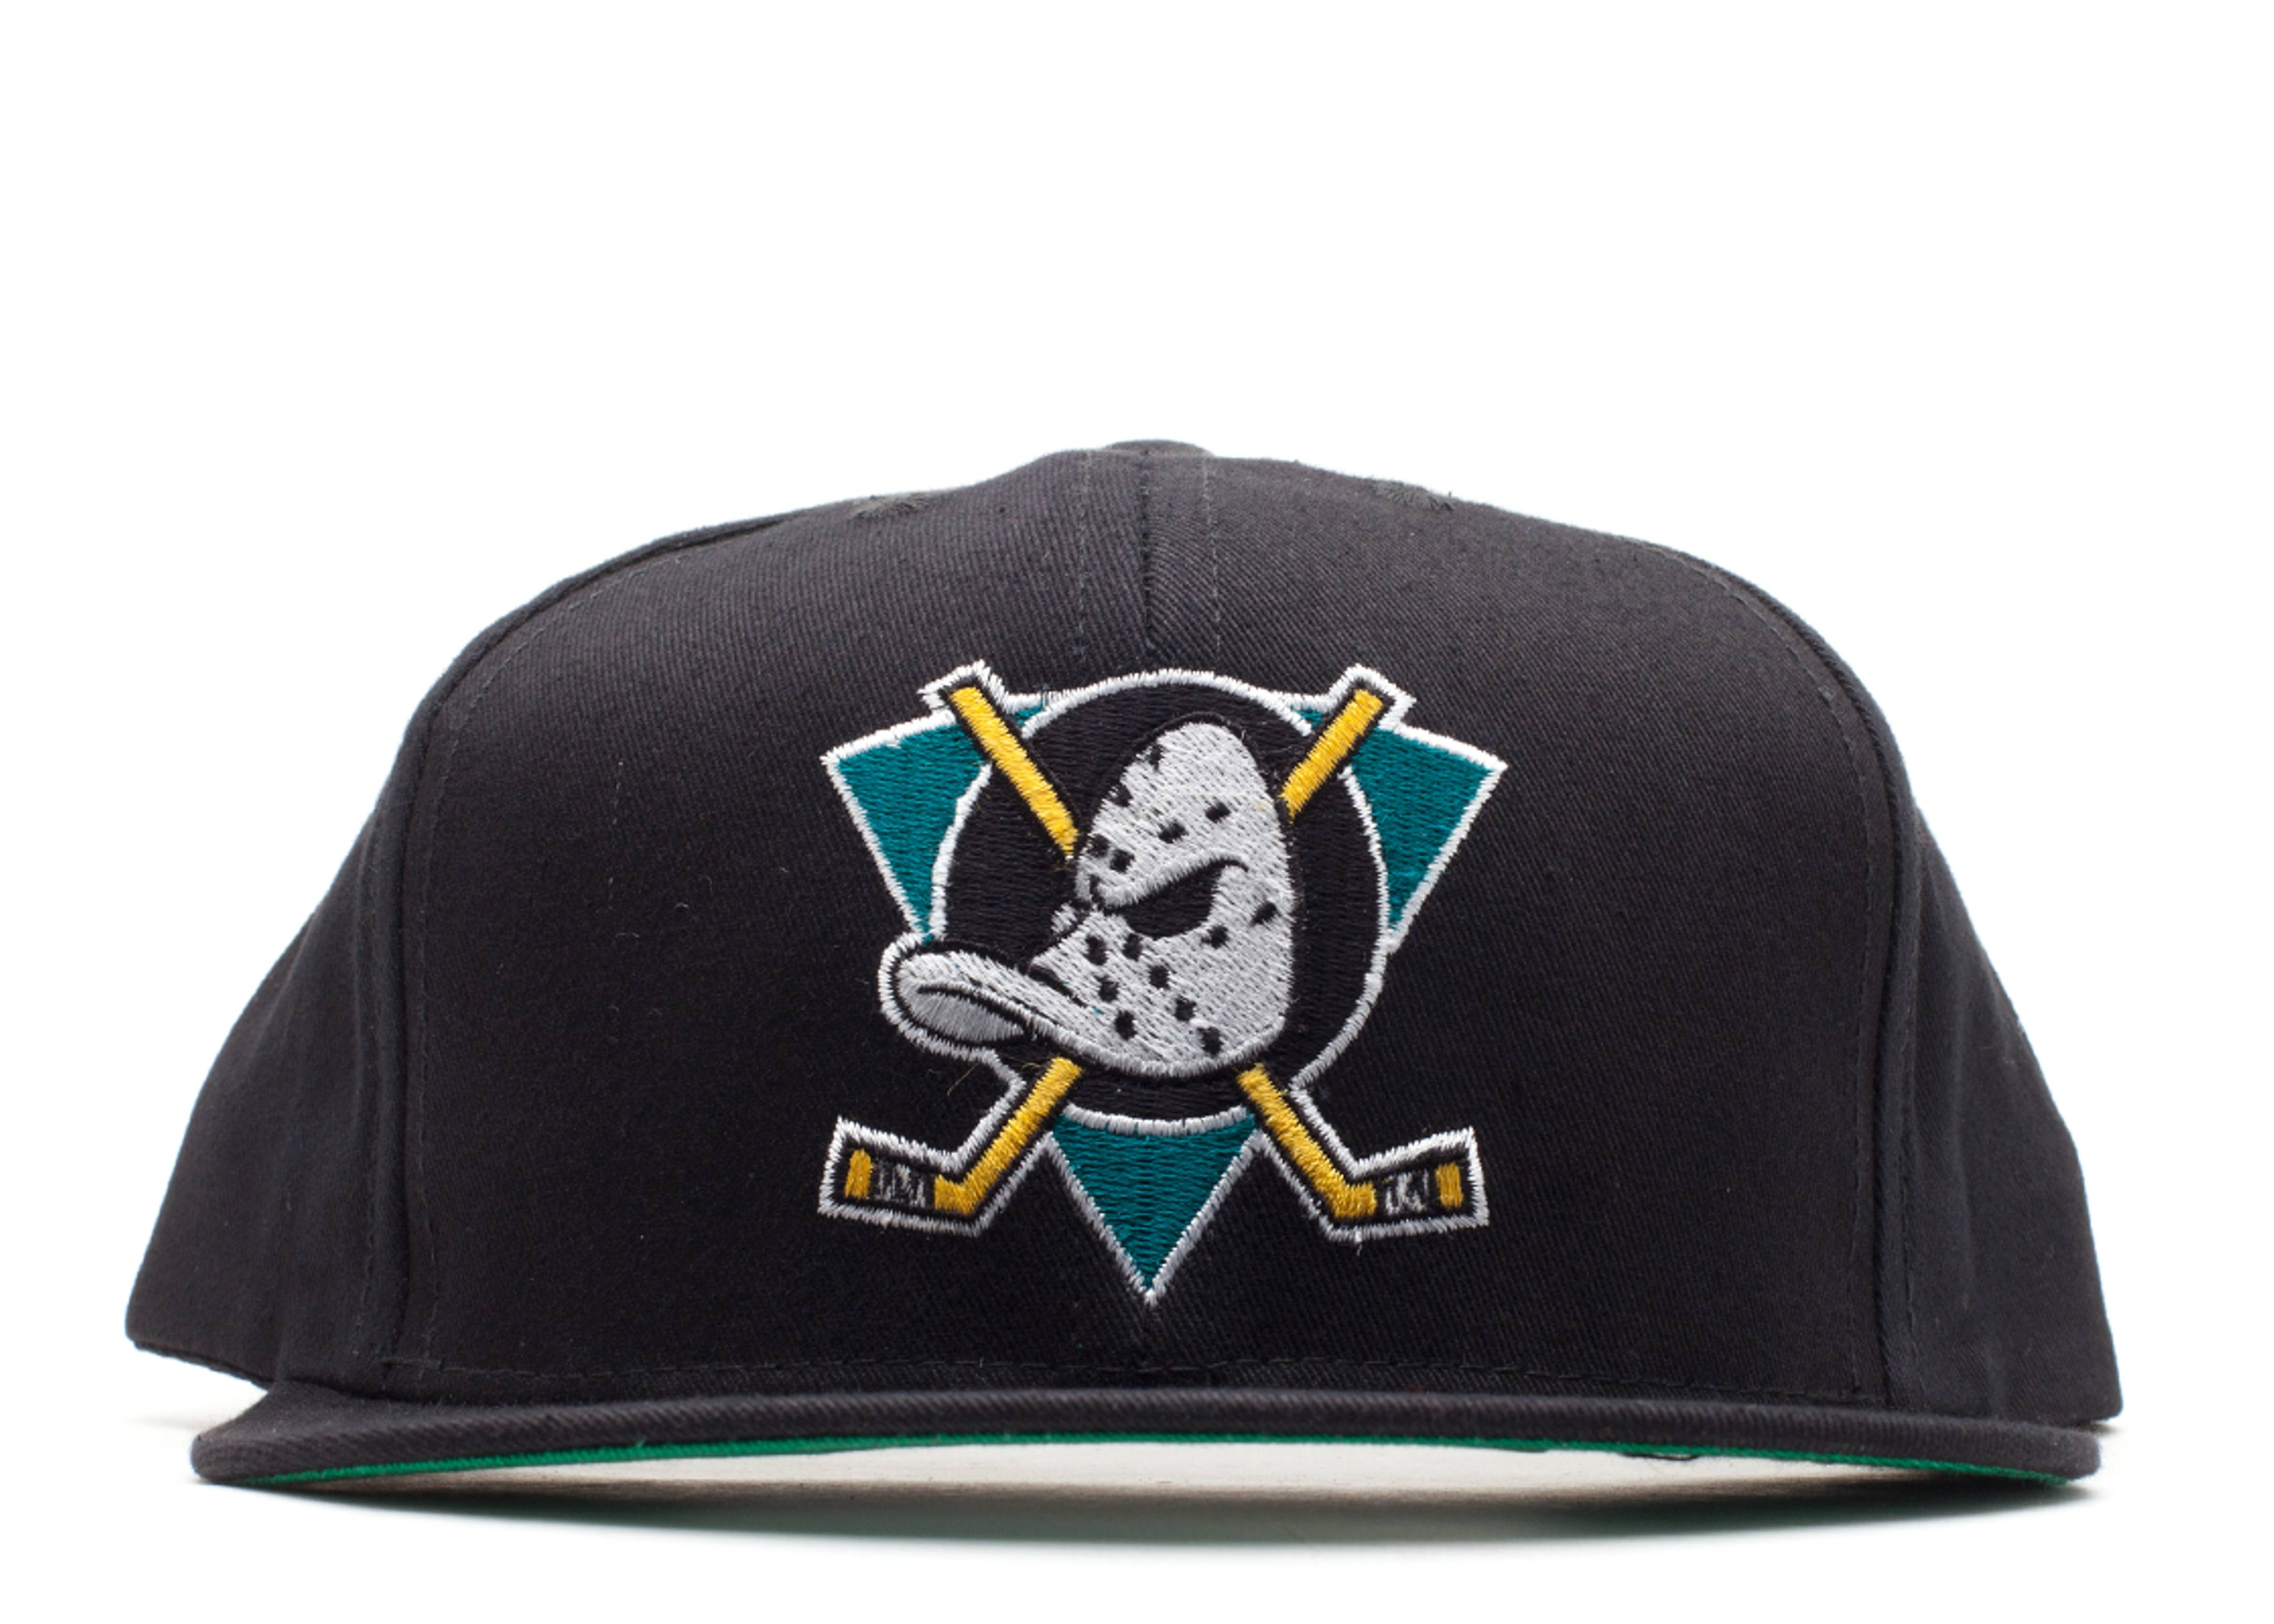 anaheim mighty ducks snap-back